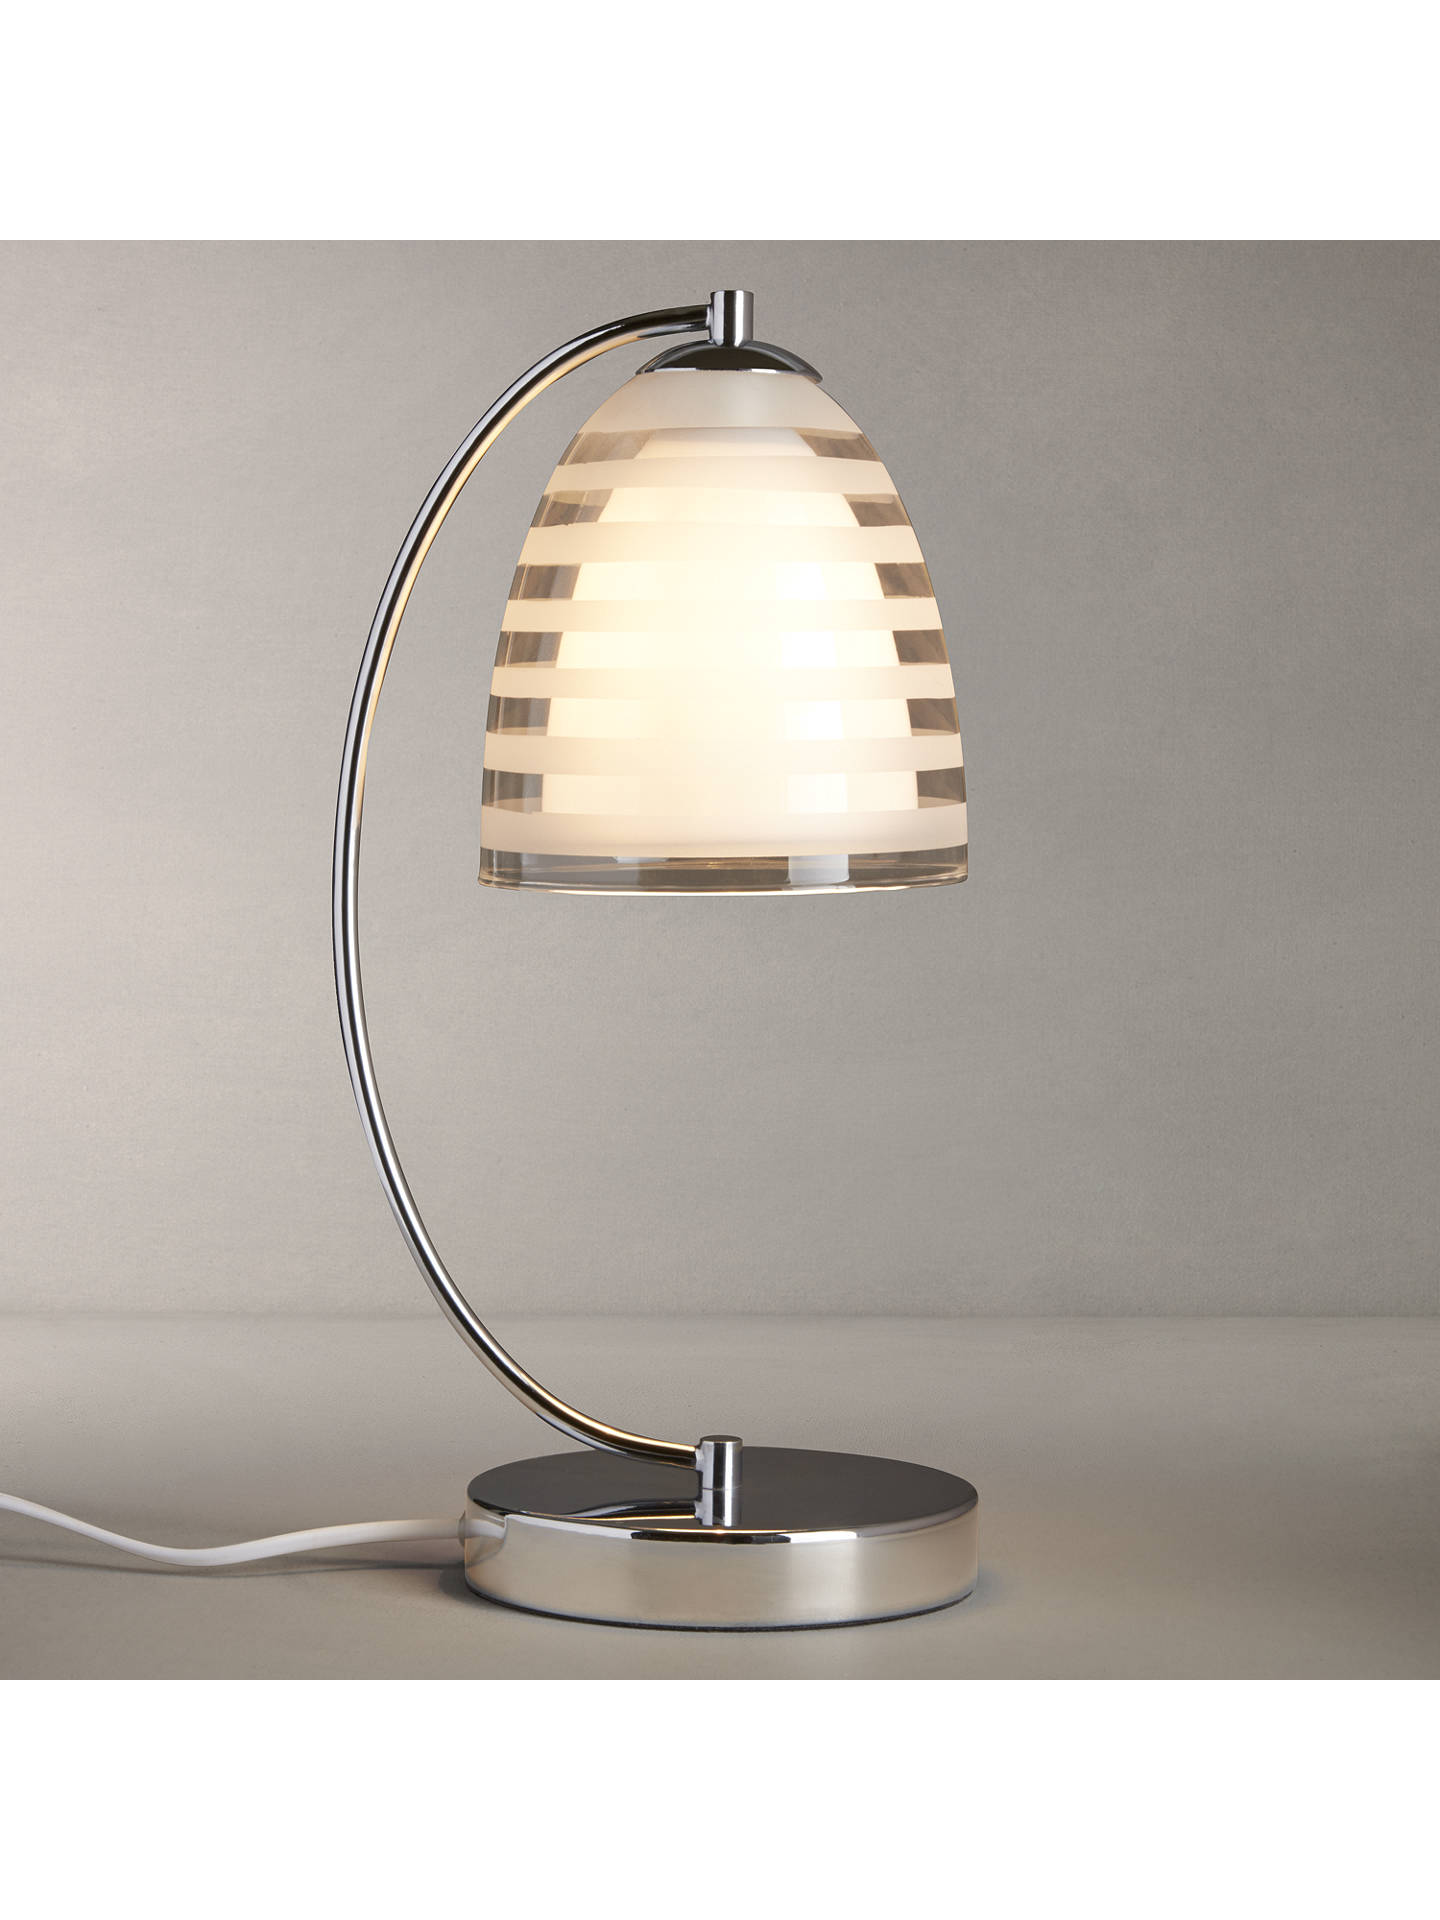 BuyJohn Lewis Amaury Striped Glass Touch Control Table Lamp Online at johnlewis.com